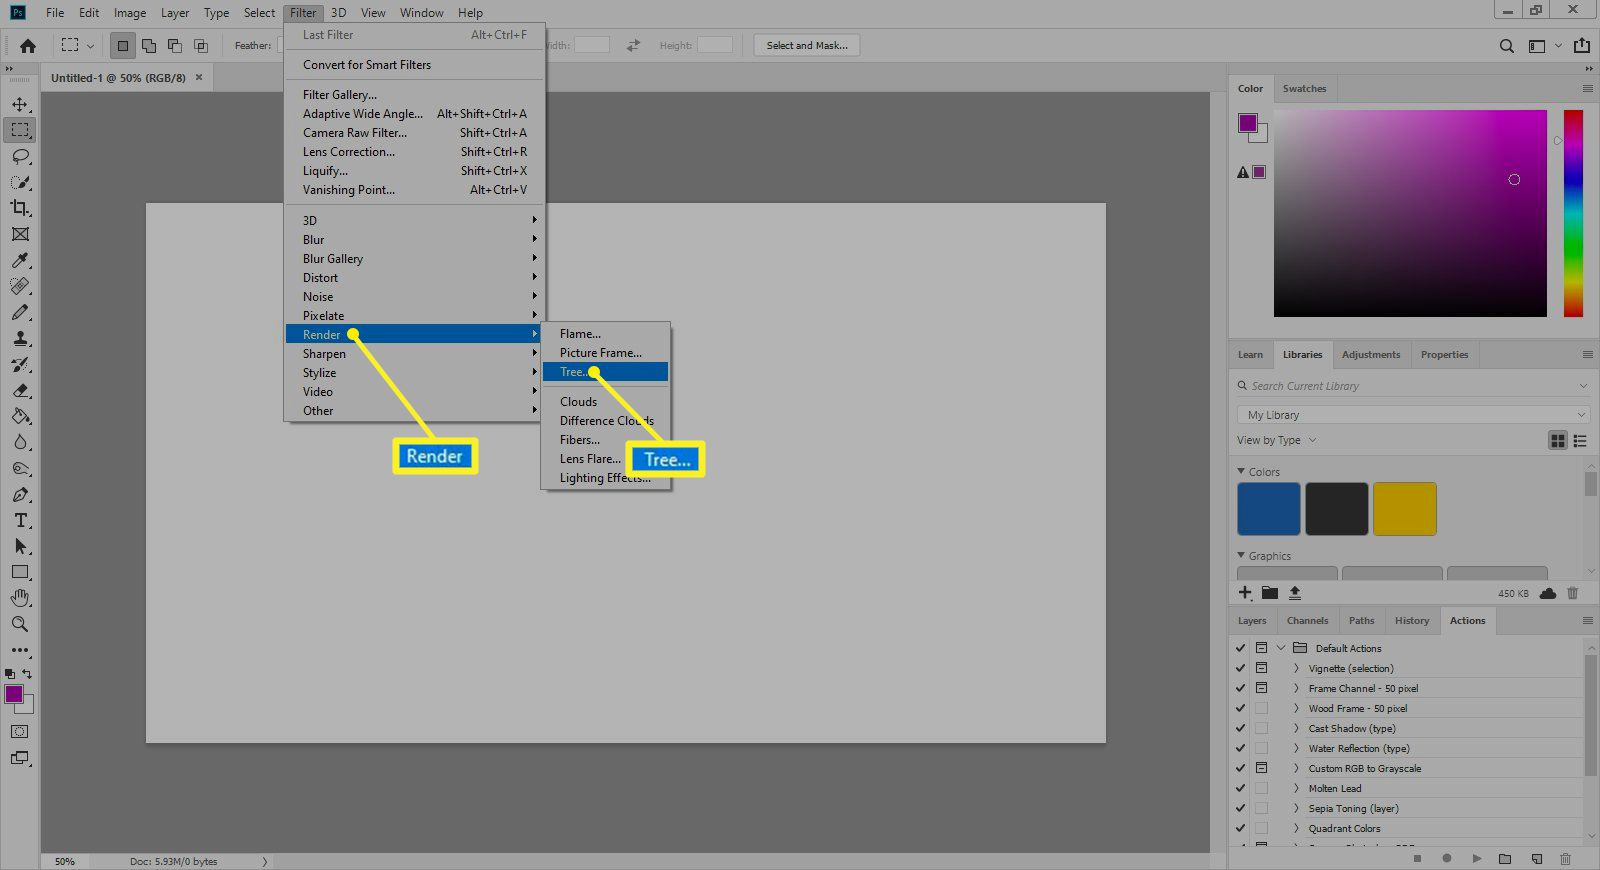 Adobe Filters menu with Render and Tree highlighted